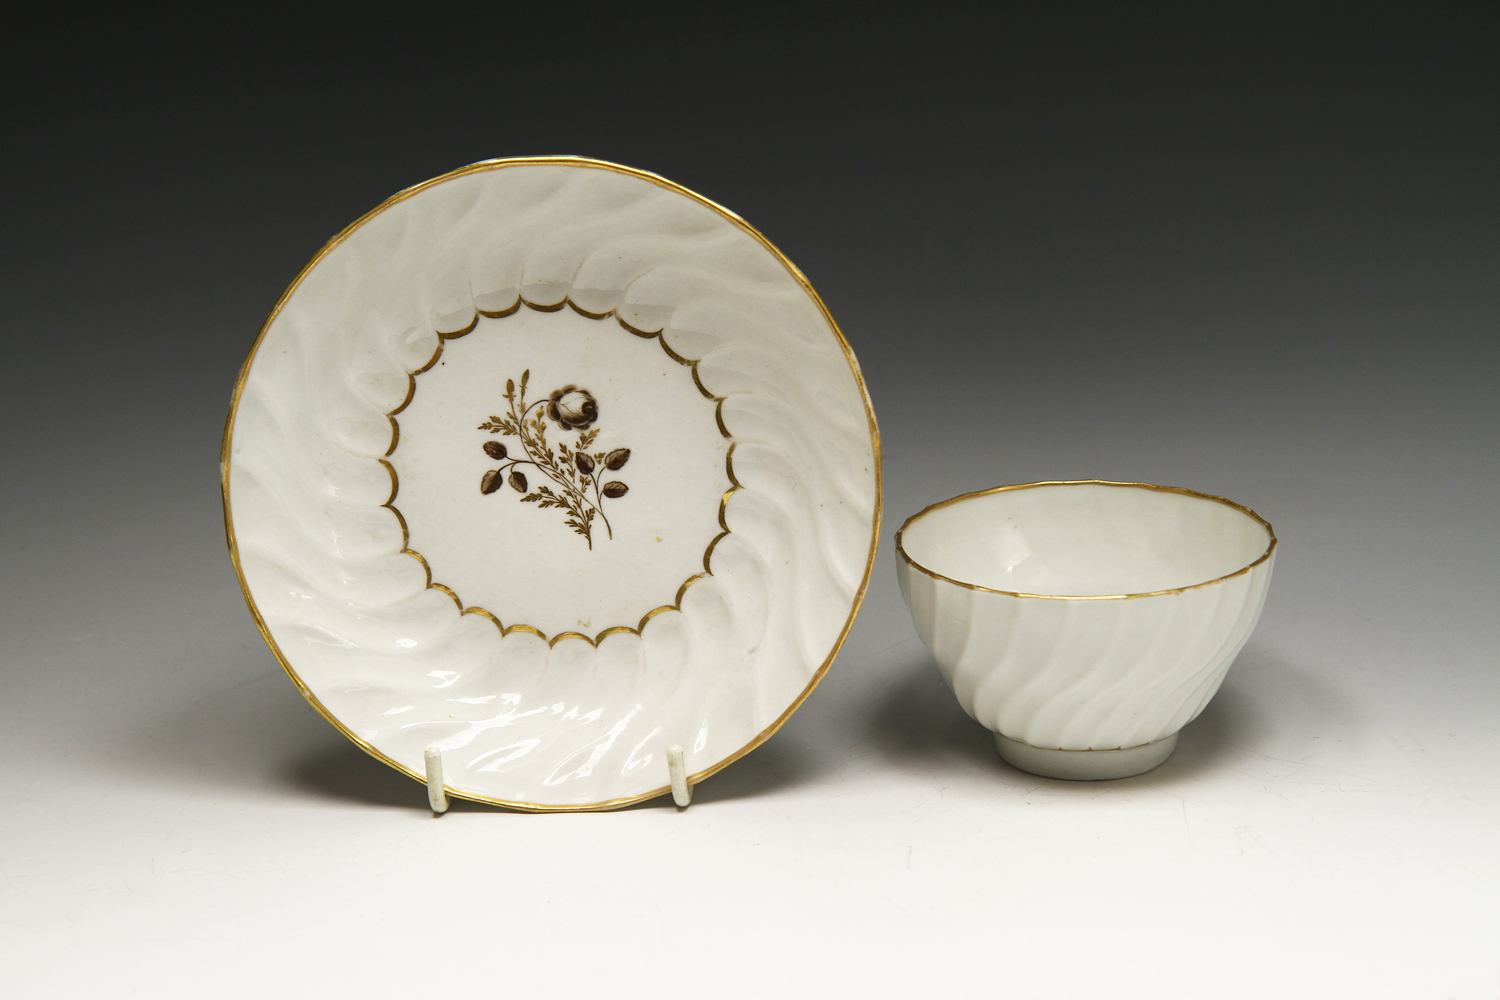 1047 - A Worcester teabowl and saucer painted with flowers, c 1785